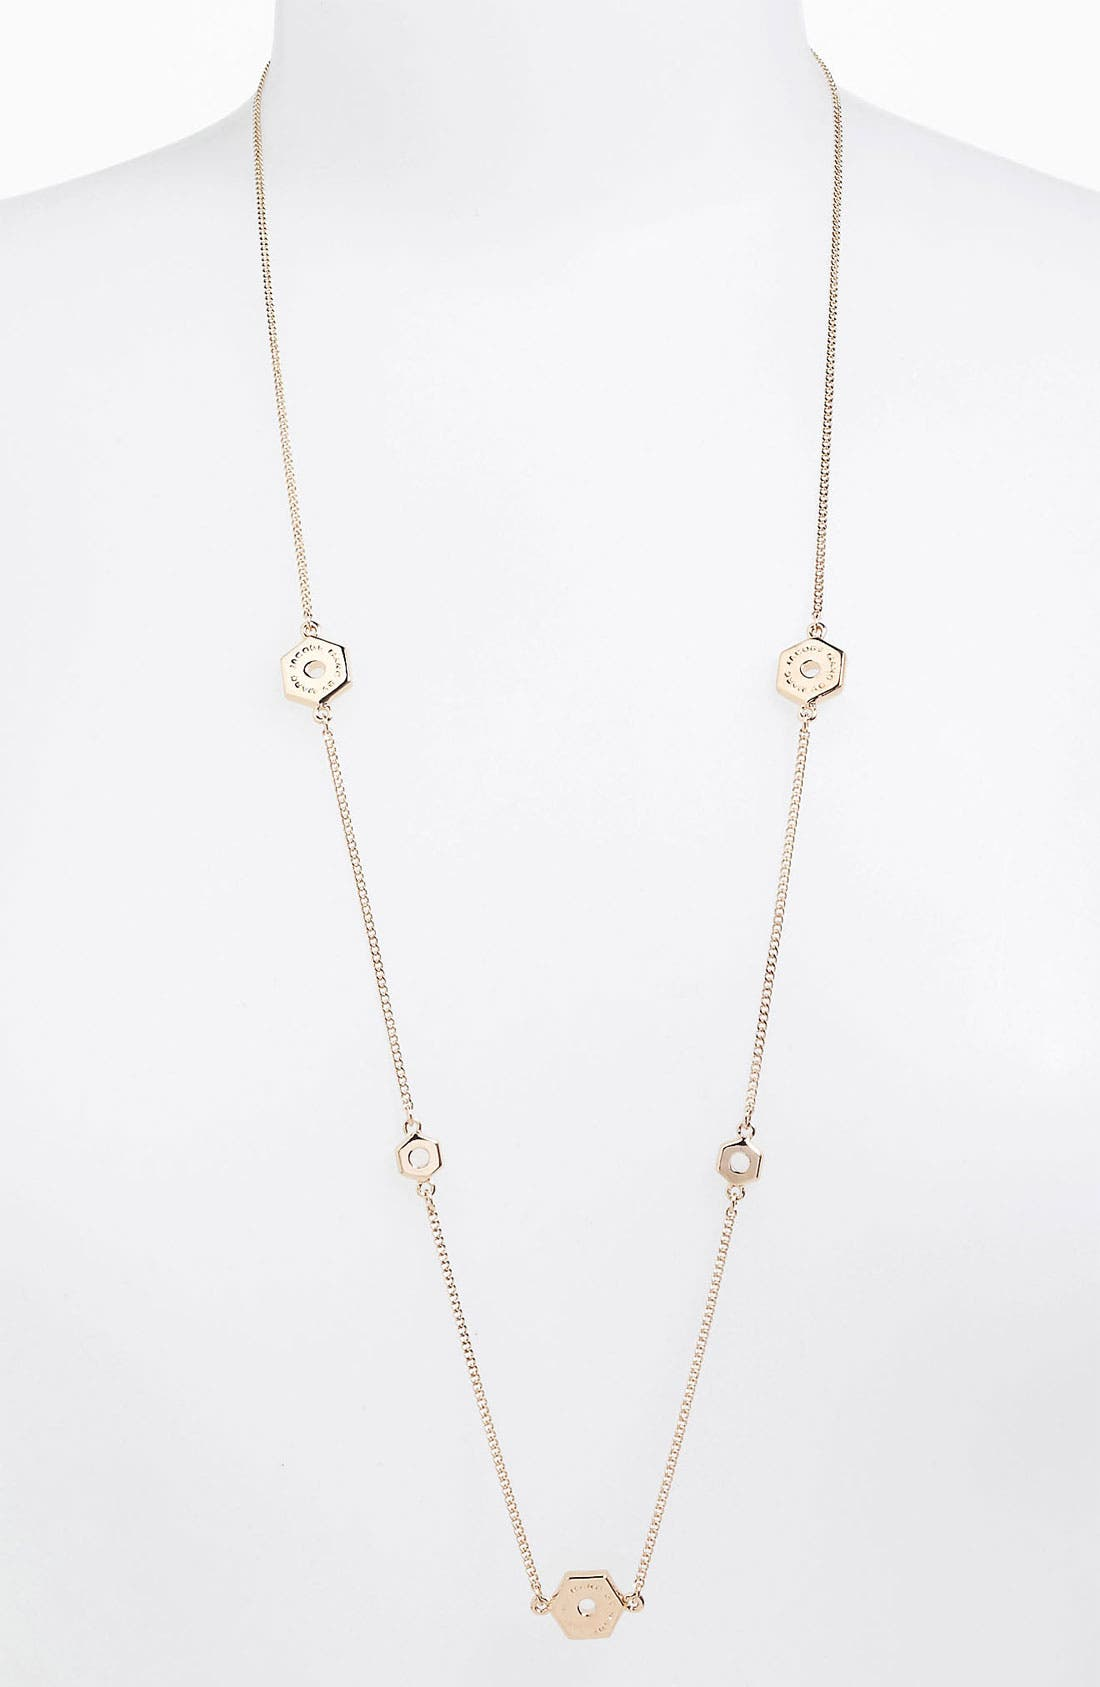 Main Image - MARC BY MARC JACOBS 'Bolts' Long Station Necklace